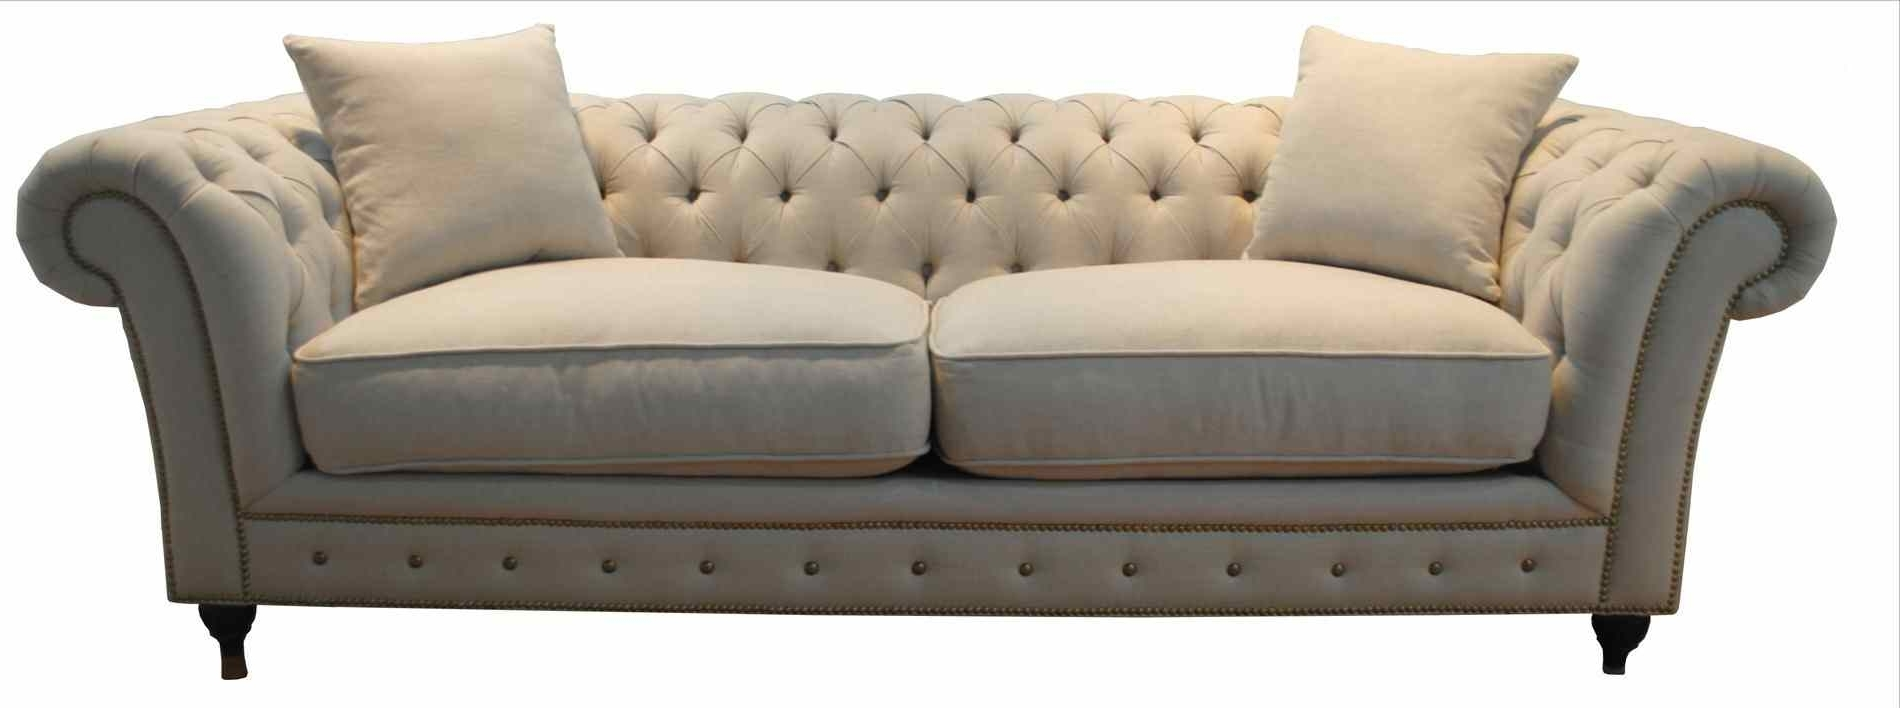 Popular French Style Sofas For Sofa : Room French Sofa Set Furniture Style Various Fabric Color (View 13 of 20)